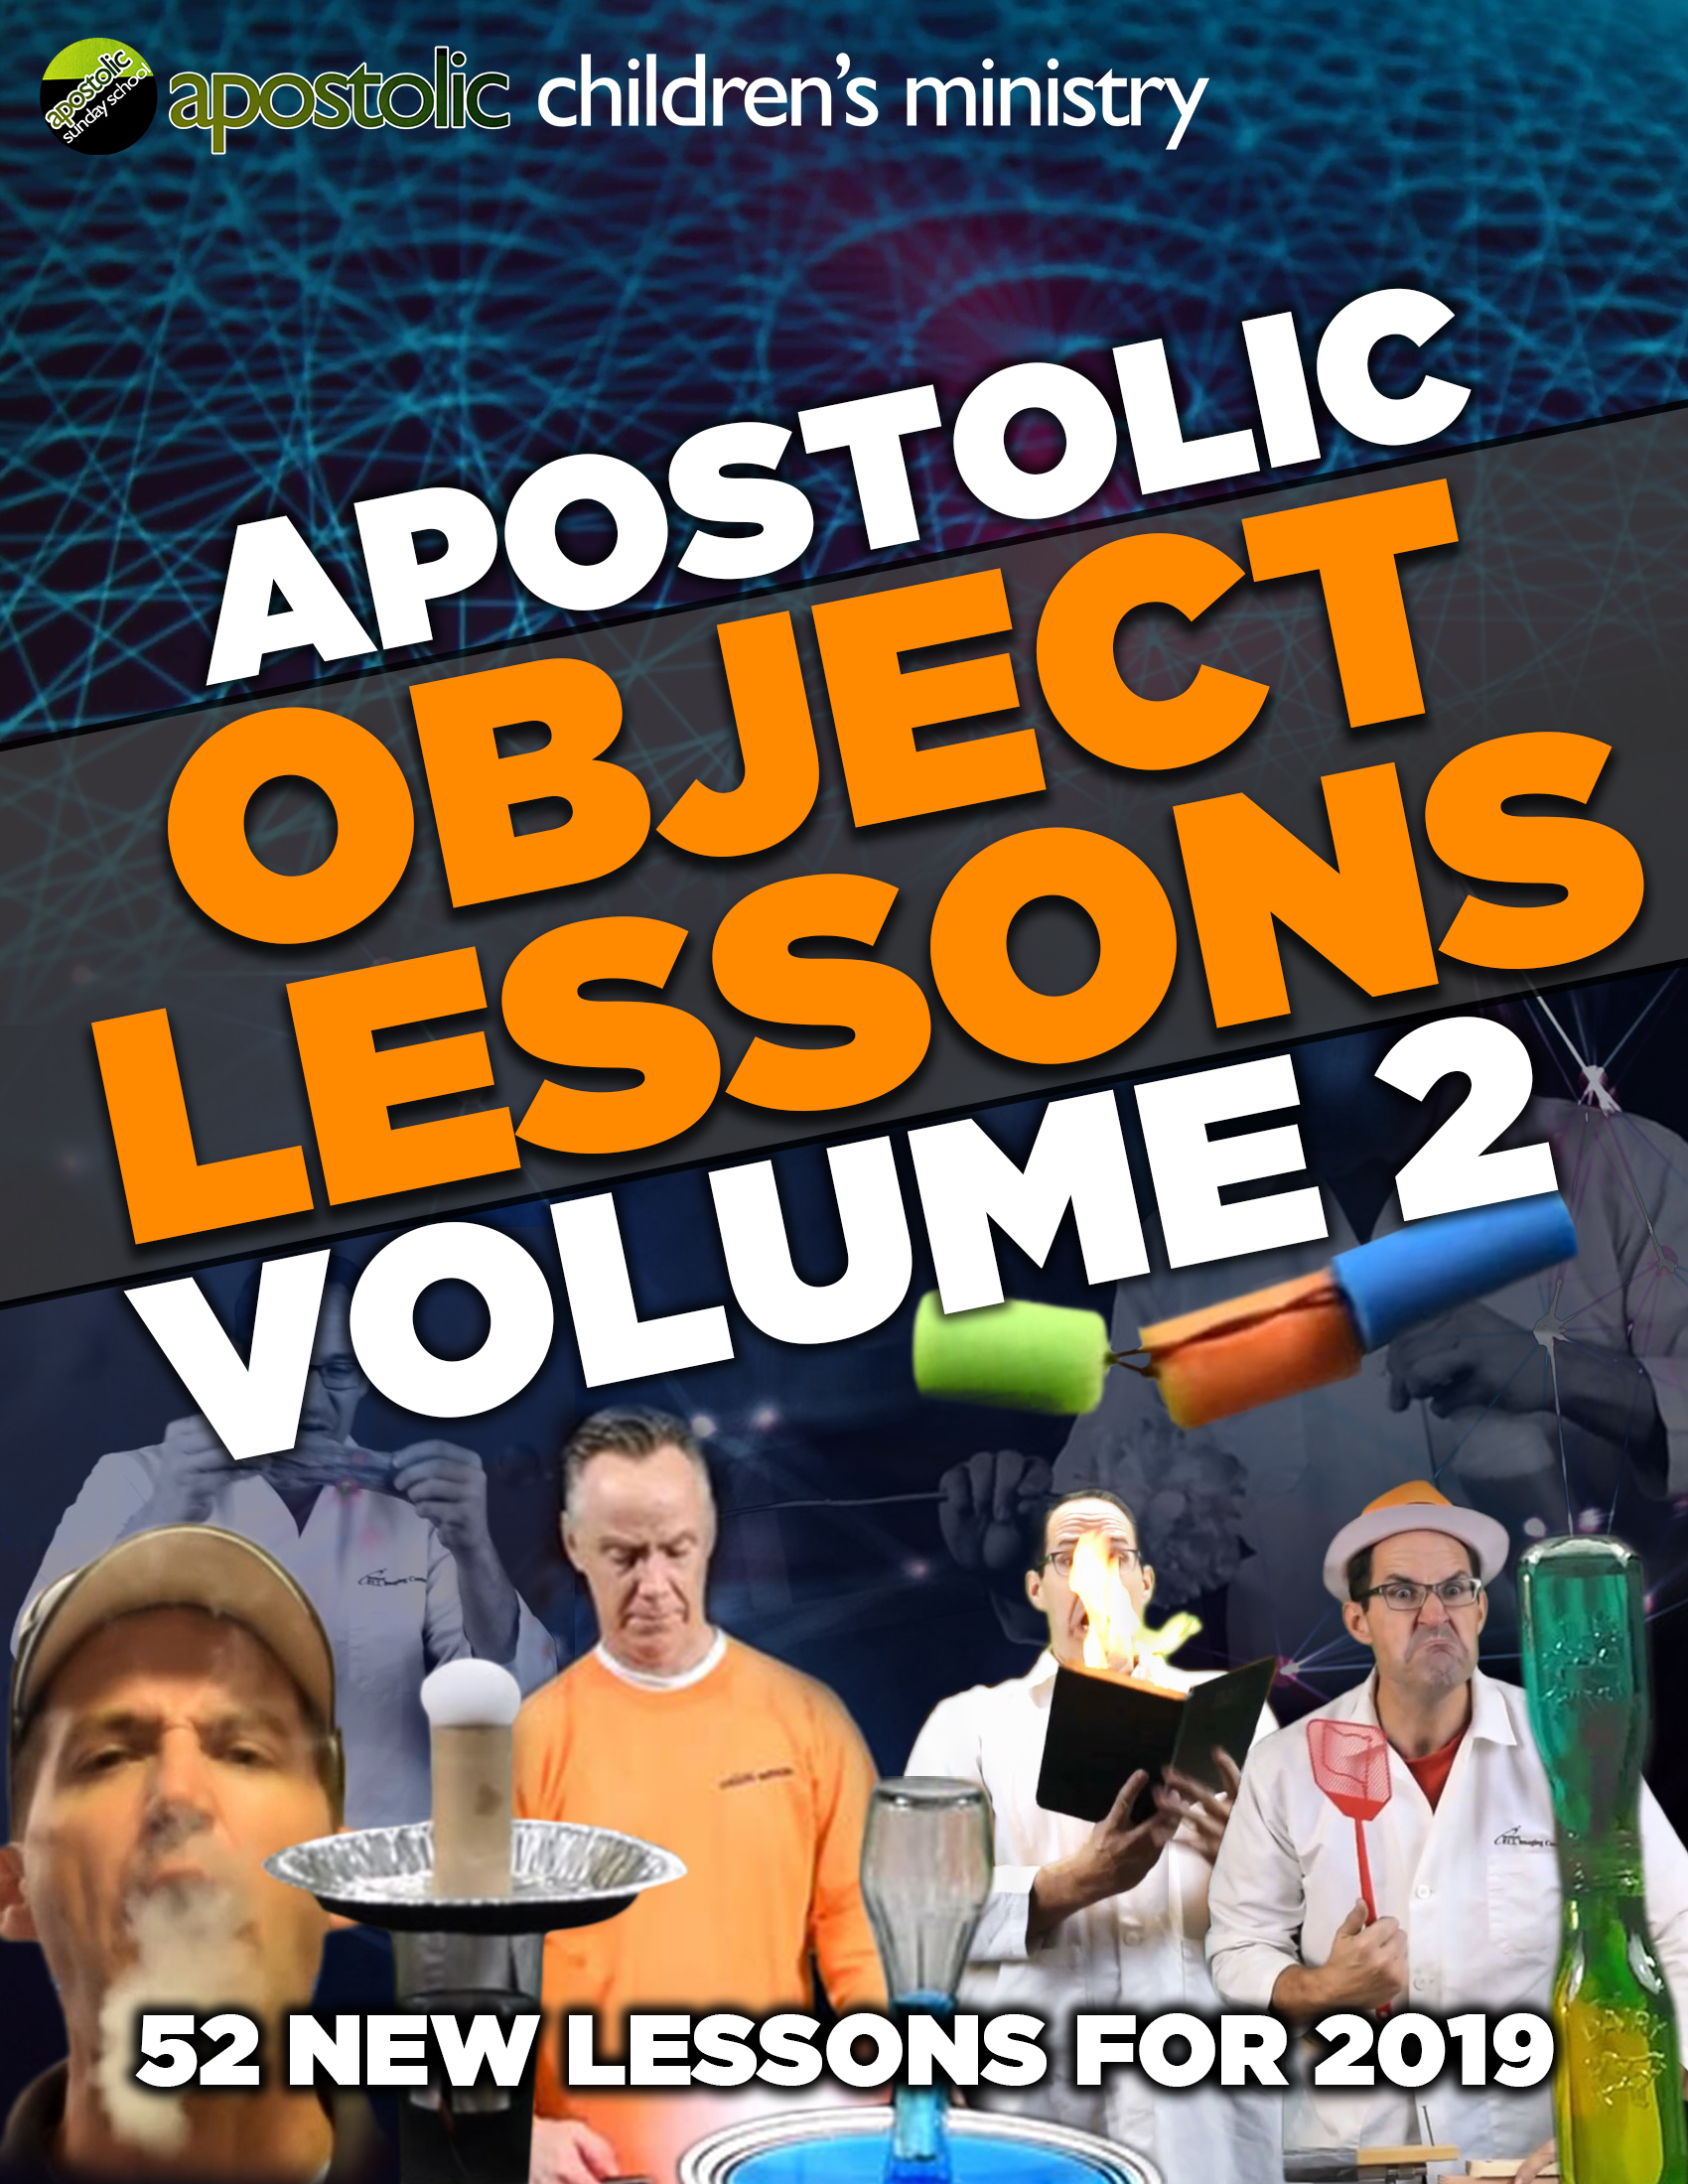 Object Lesson Book - Volume 2 - 2019 Object Lessons